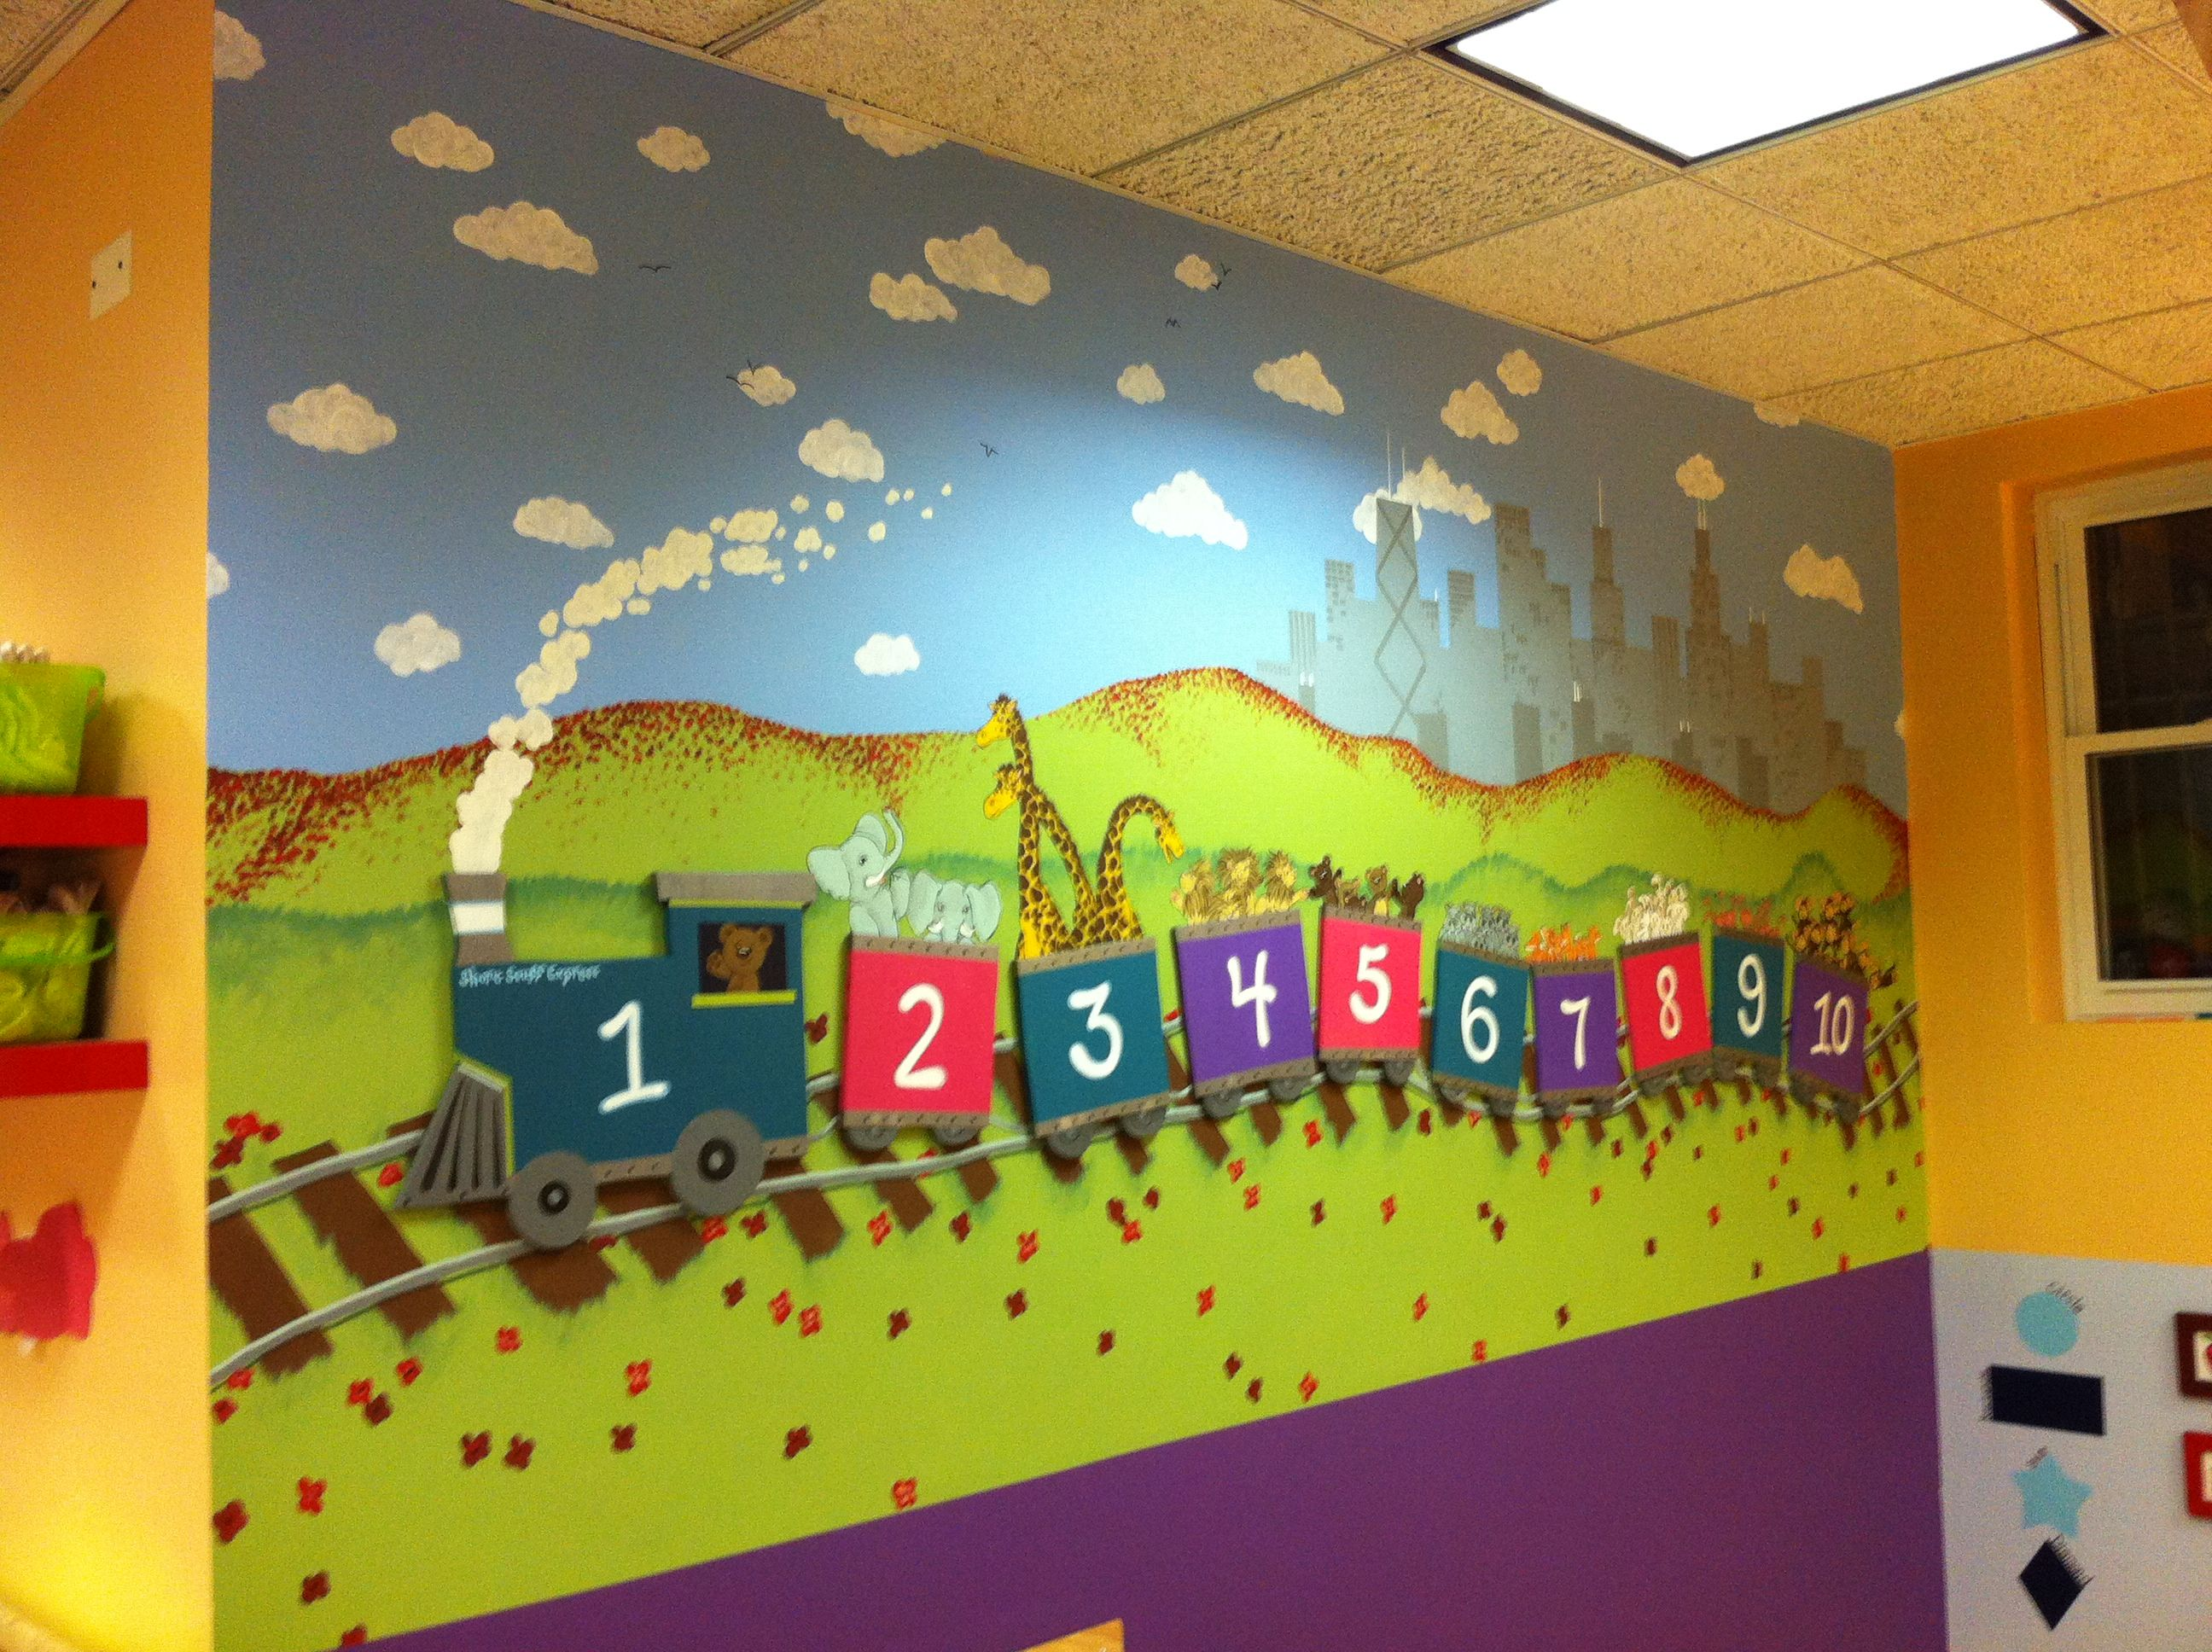 This Is The Numbers Mural At An Early Education